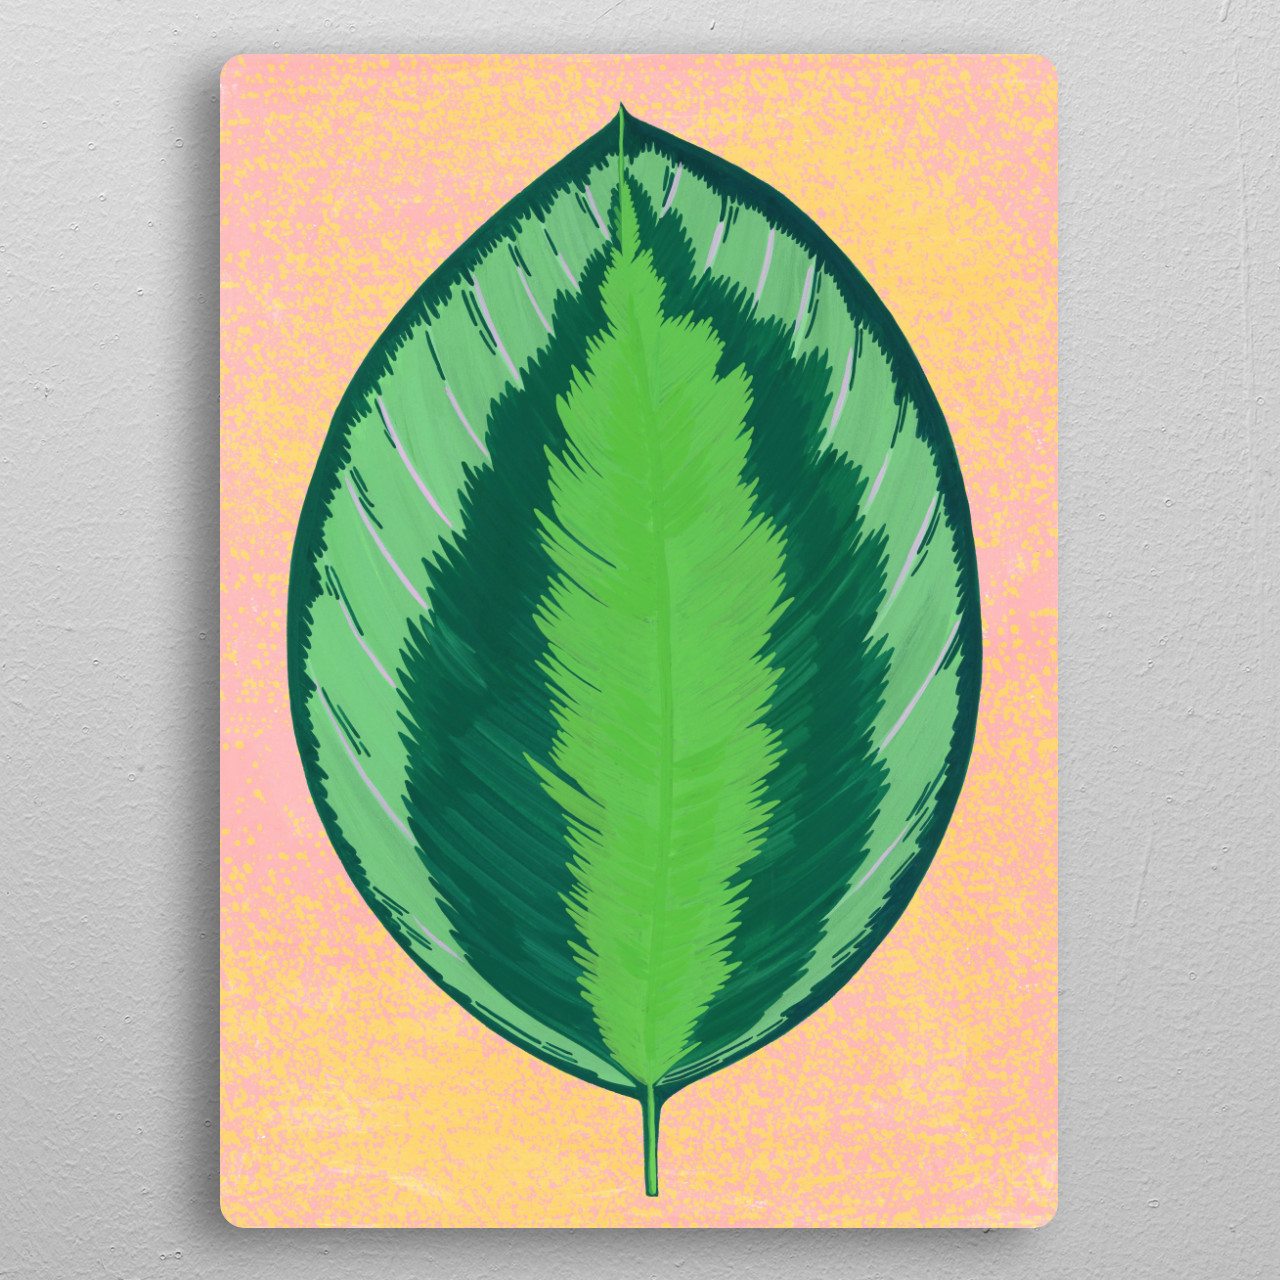 tropical leaf pocket-size metal print from Black box